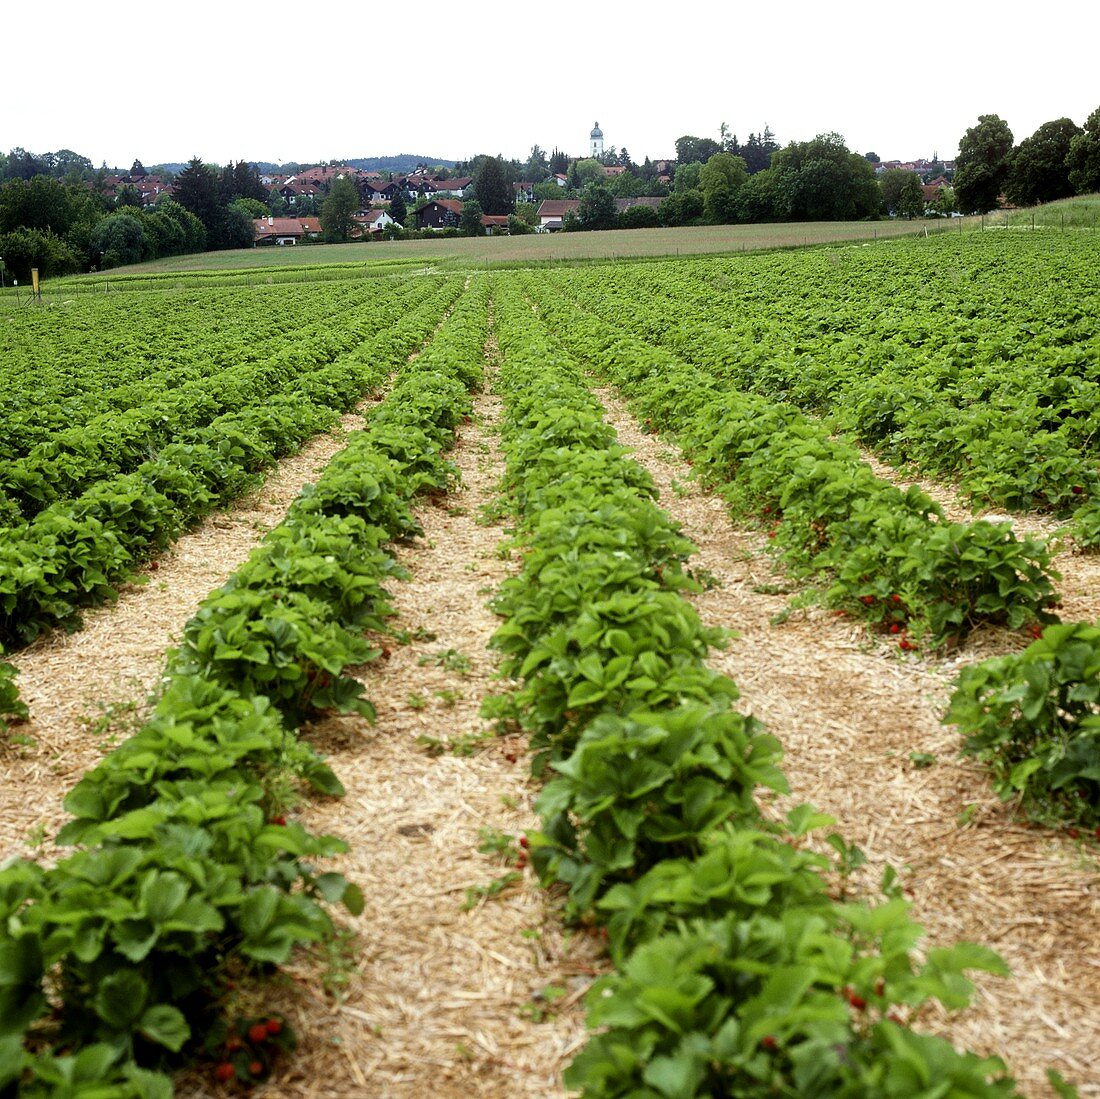 Strawberry field with rows of plants